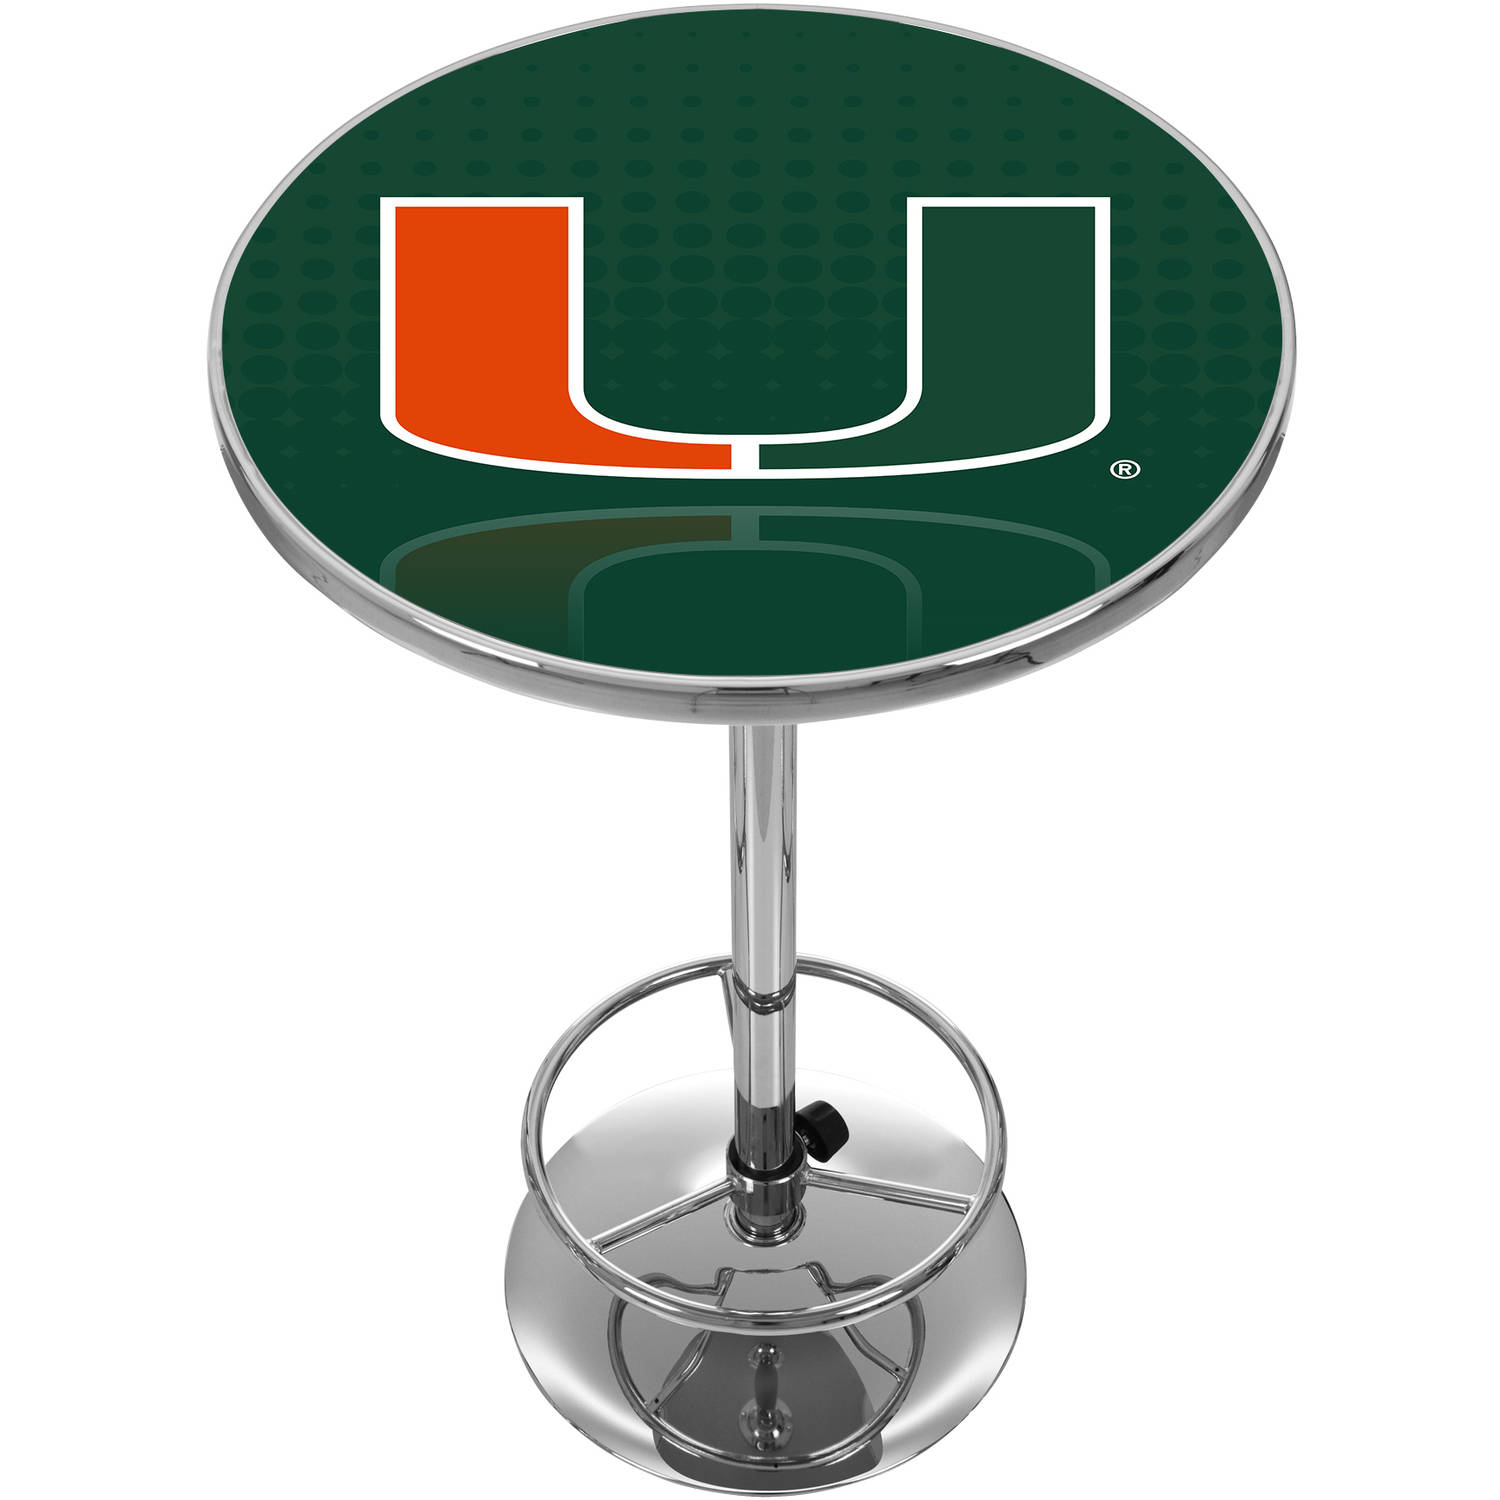 University of Miami Chrome Pub Table, Reflection